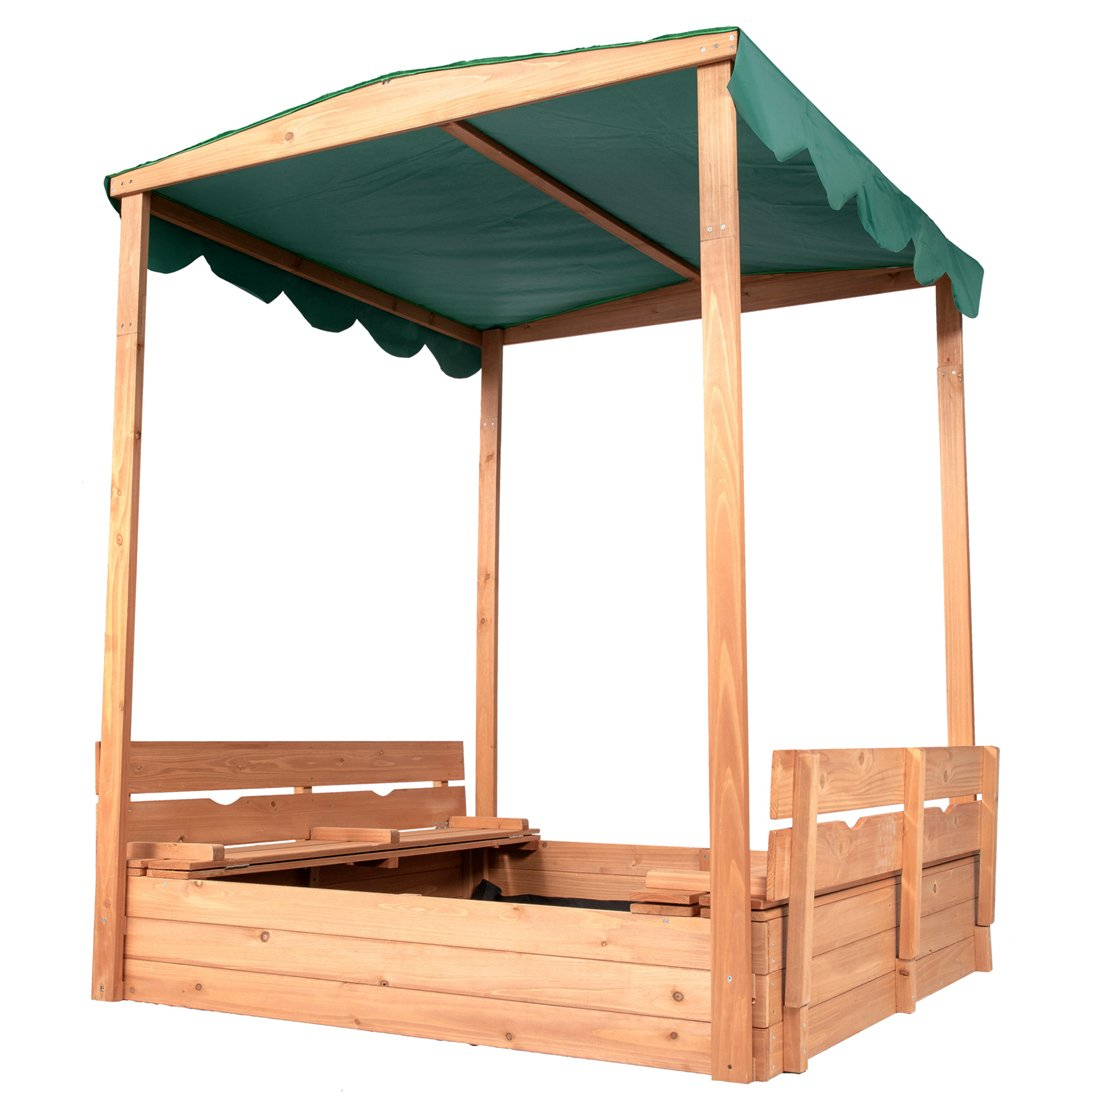 Good Life Outdoor Canopy Sandbox With Covered And Bench Seats Kids Play Sand For Sand Box Toys Wood Natural Color 47 X 47 Size